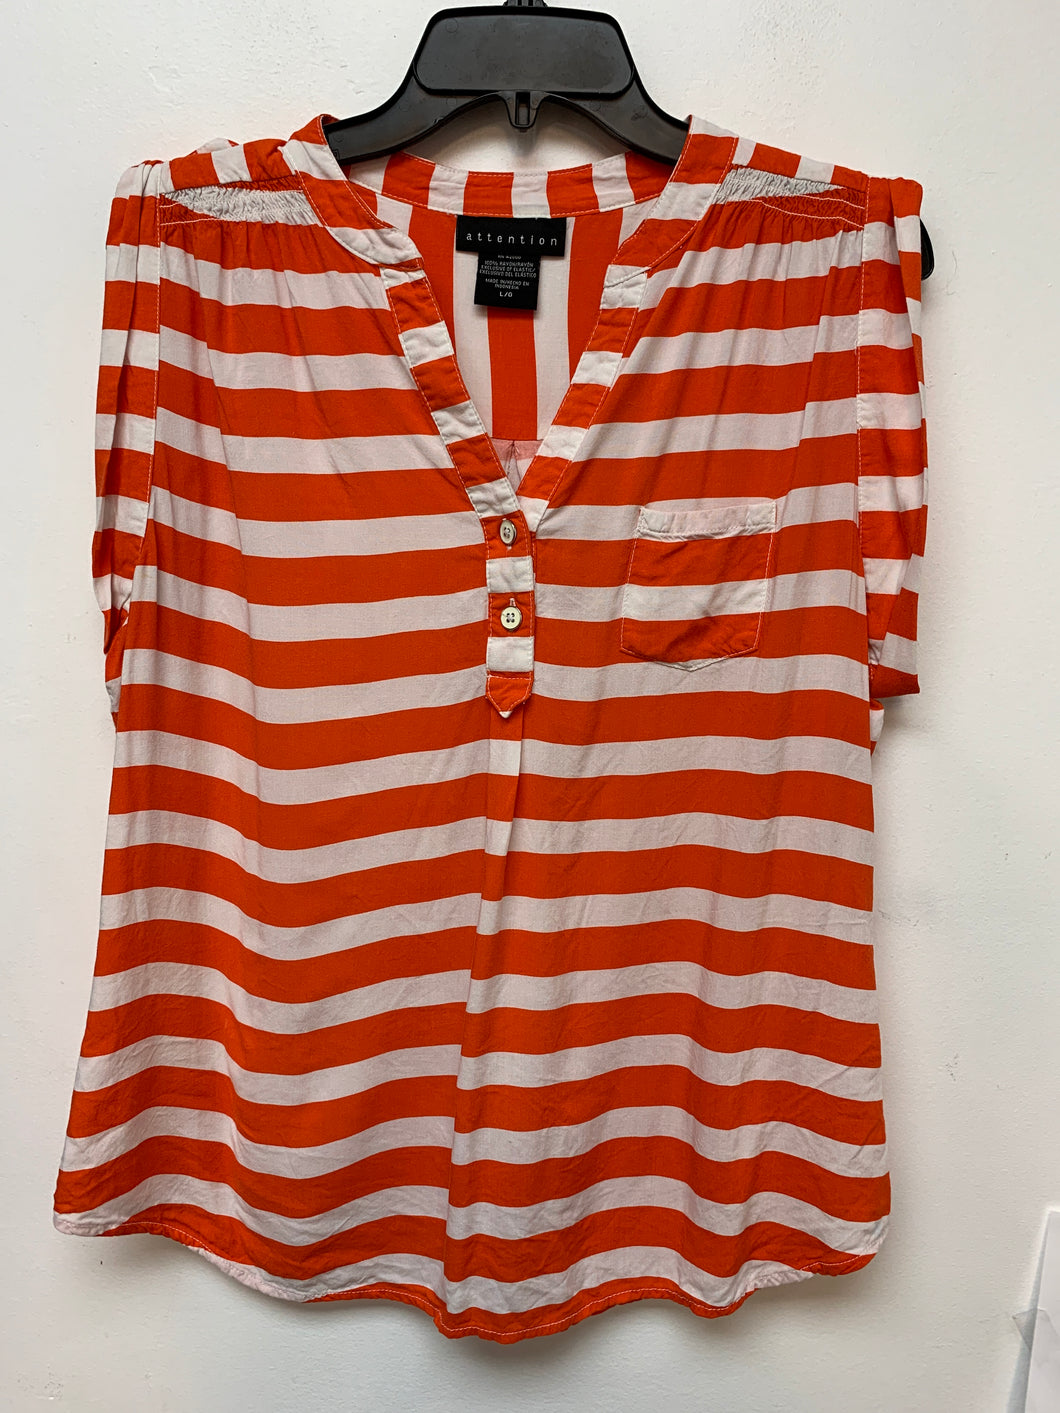 Women's Attention Striped Top